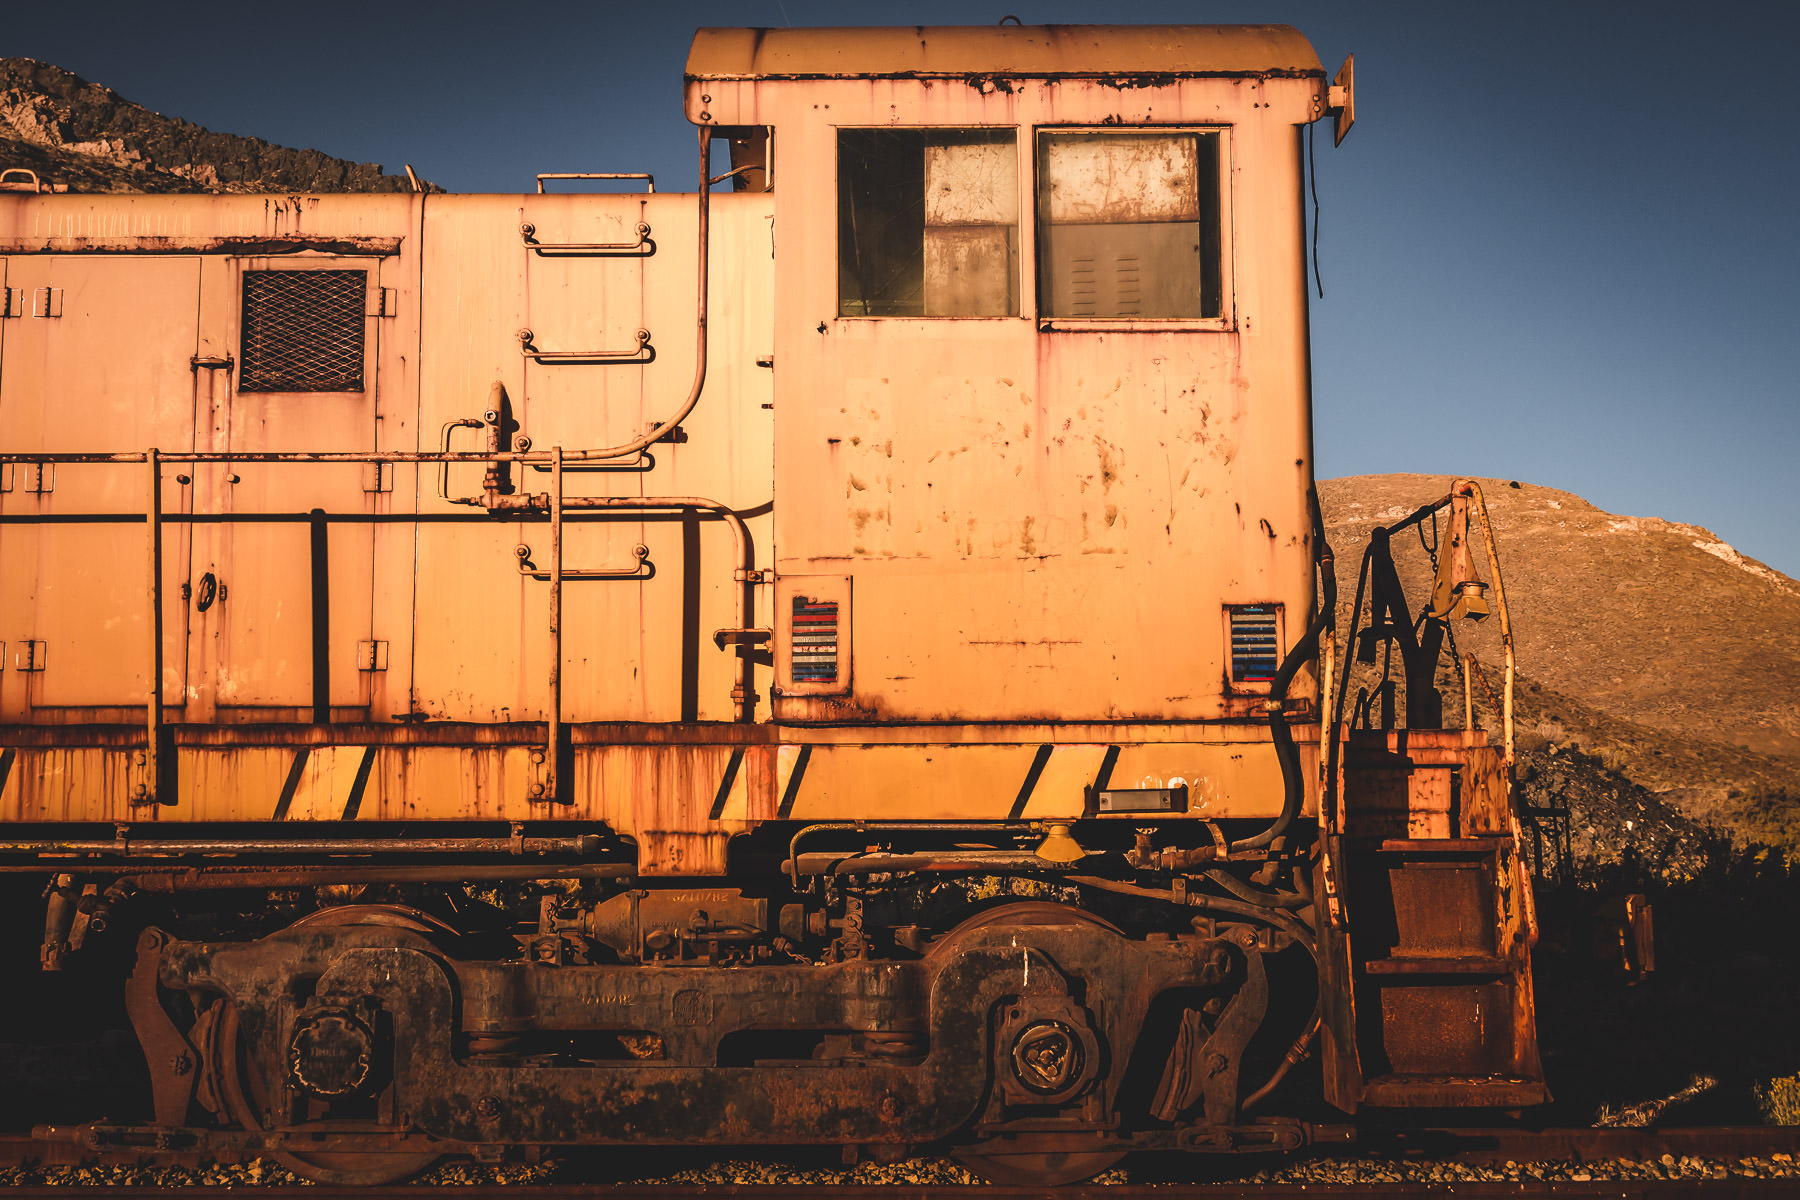 Detail of a train engine abandoned in the desert near Magna, Utah.